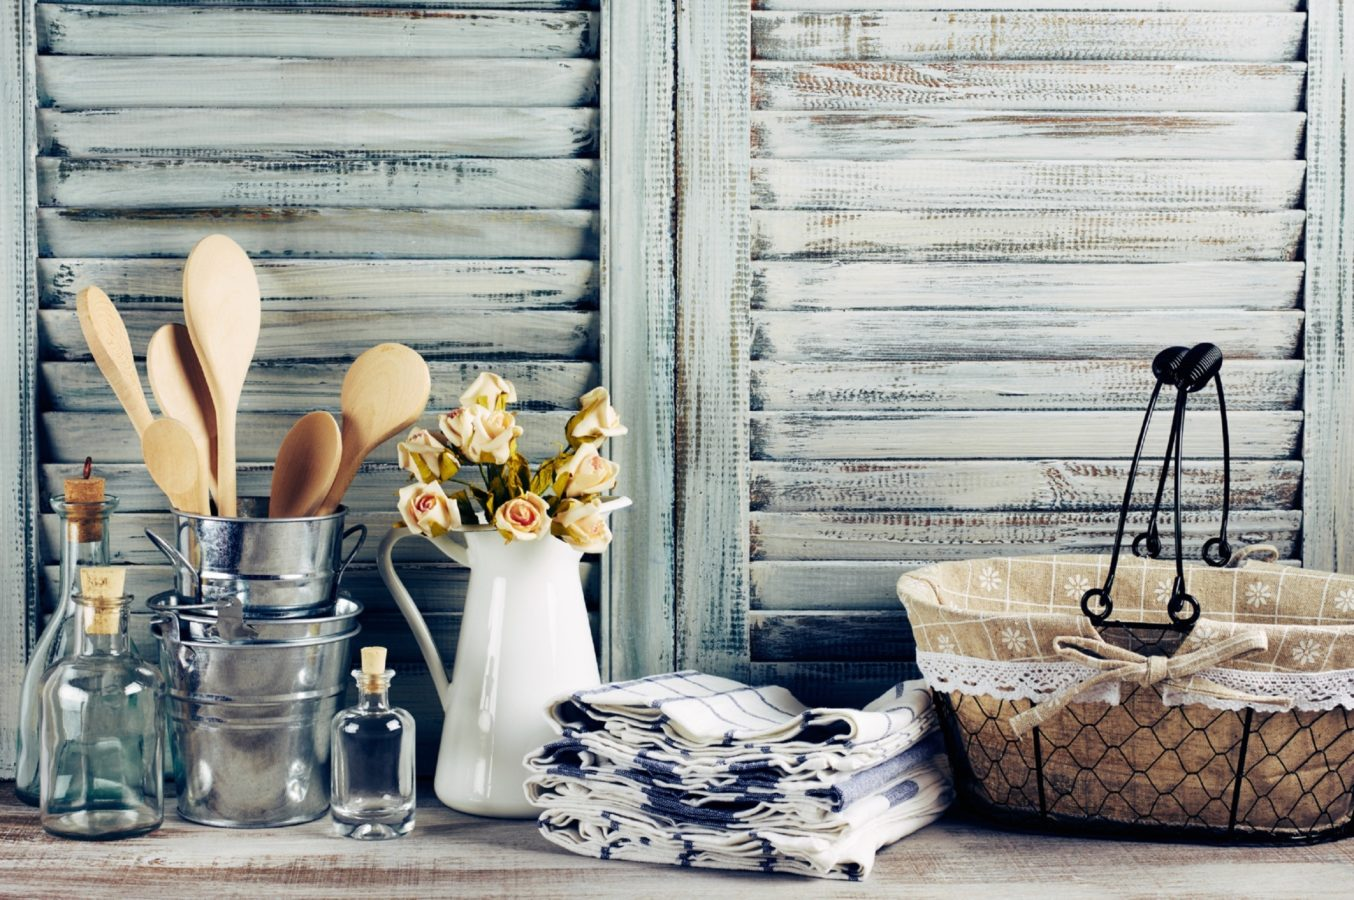 Haven't you heard? Cottagecore is the new hygge